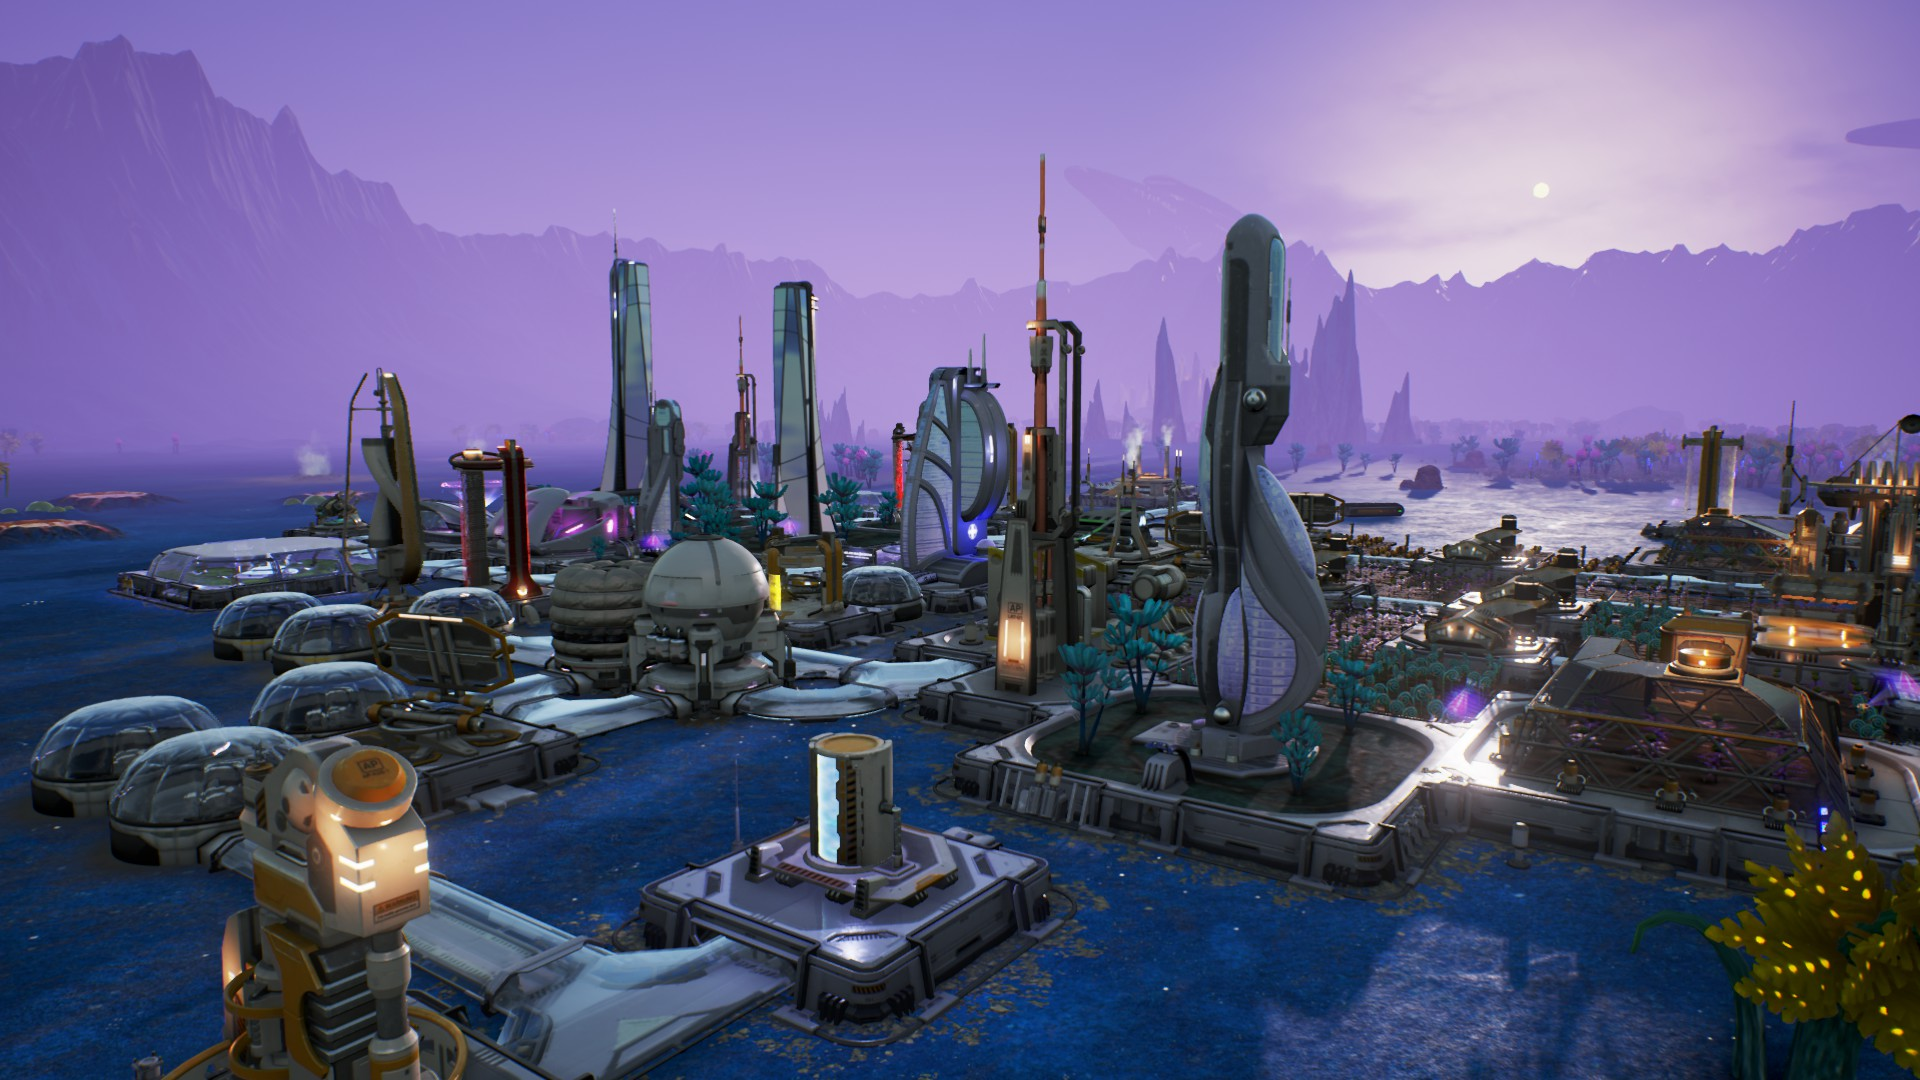 download aven colony cracked by codex include all dlc and latest update mirrorace multiup